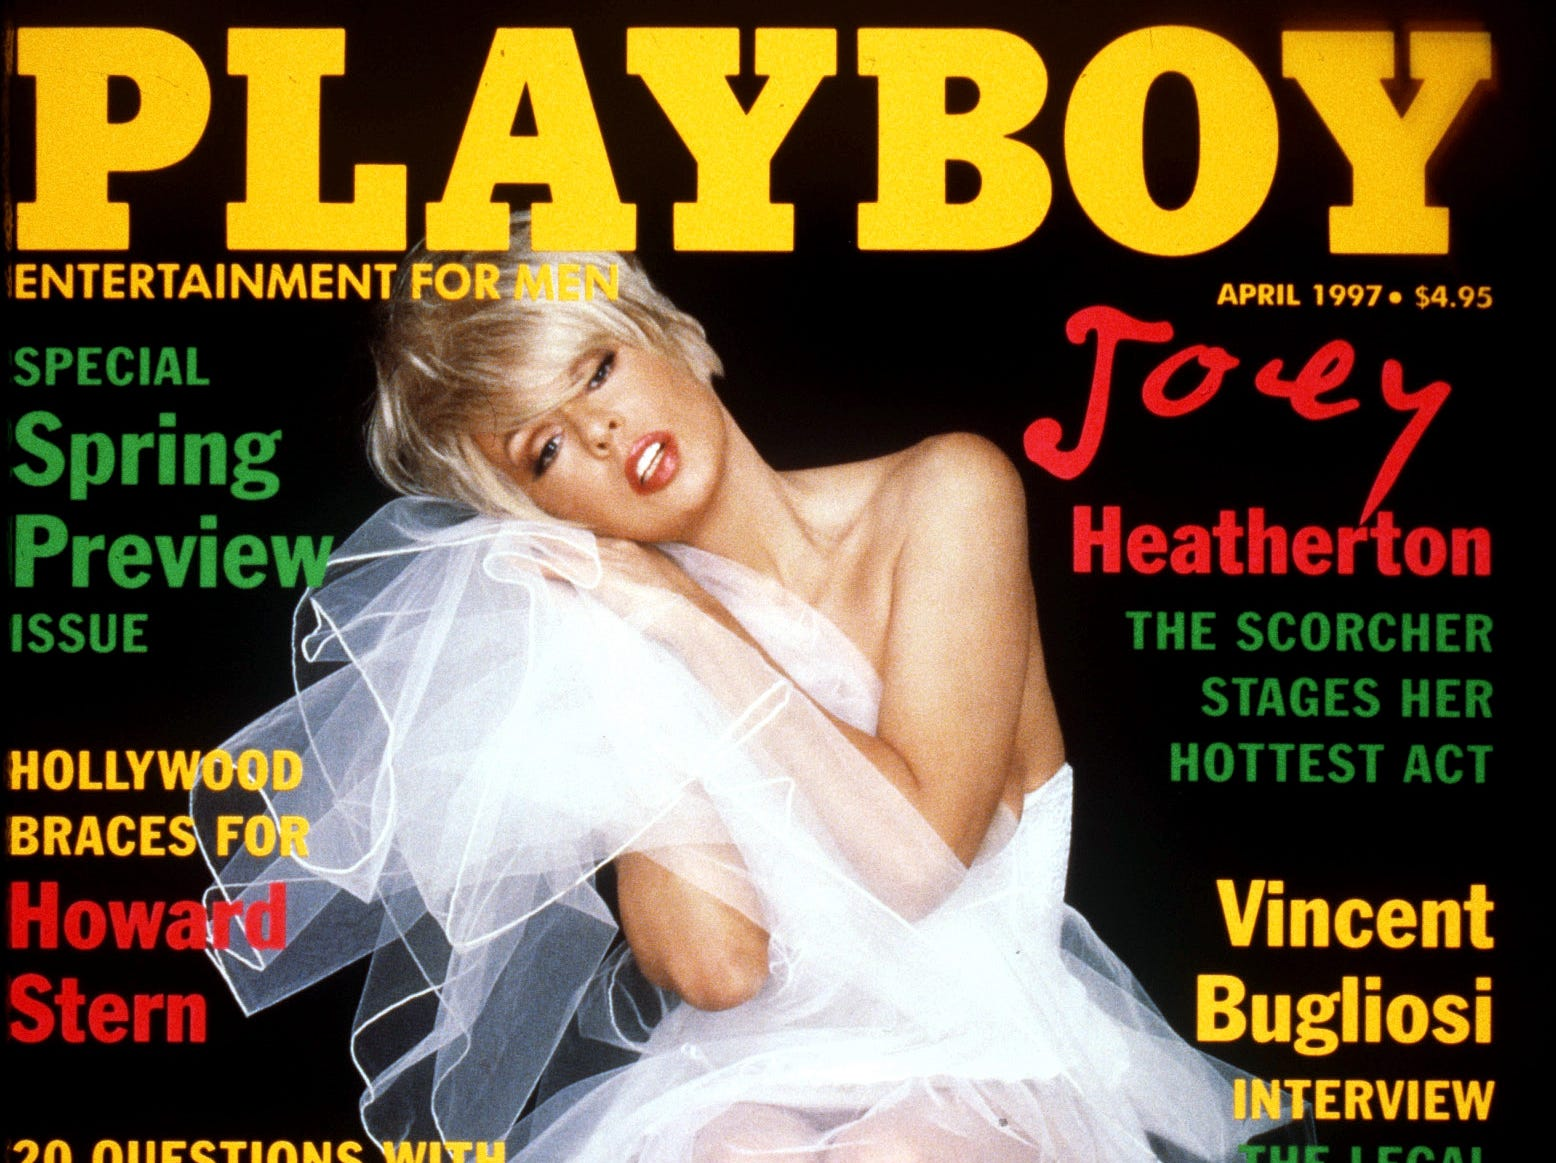 DATE TAKEN: 1997--- Joey Heatherton on the cover of Playboy magazine. ORG XMIT: UT41343